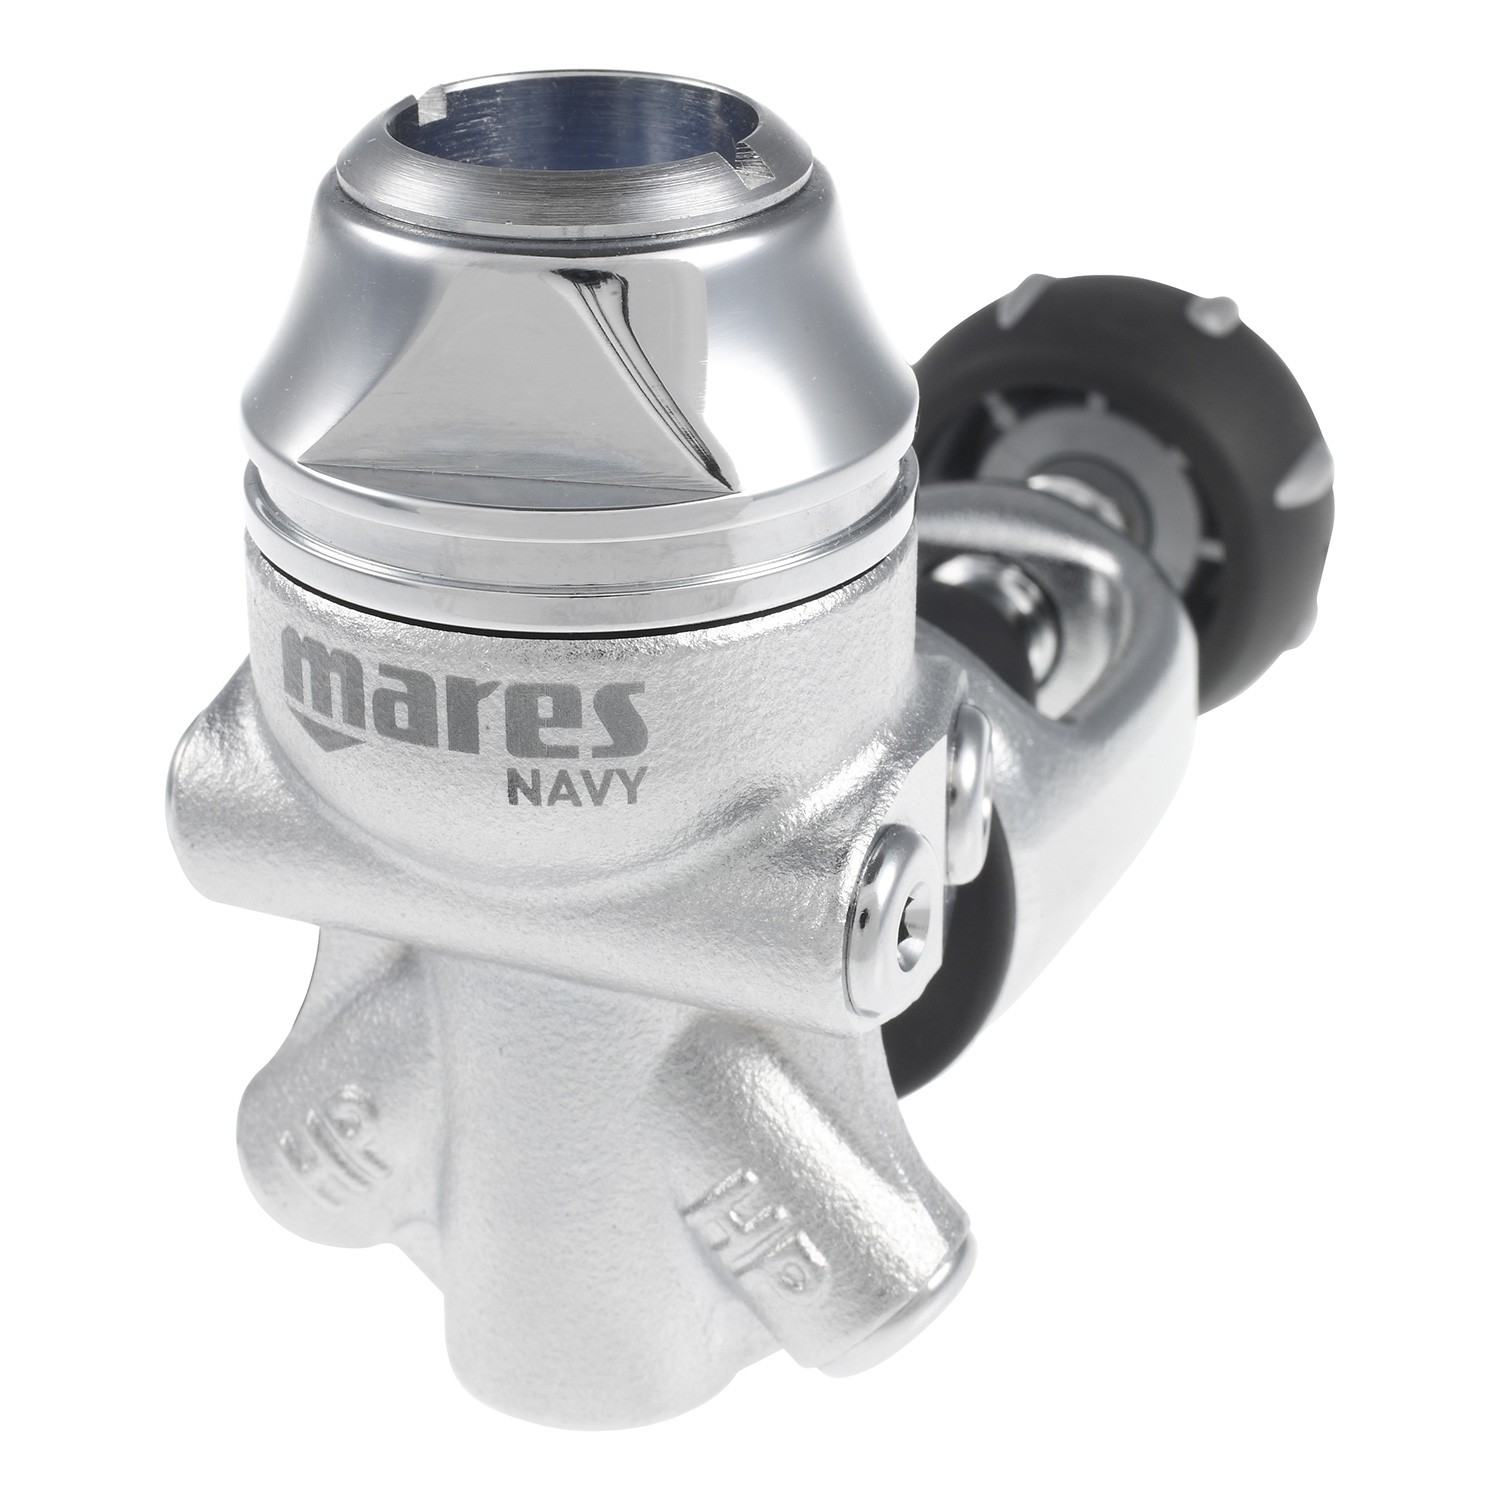 Mares Abyss 22 Navy II Regulator First Stage